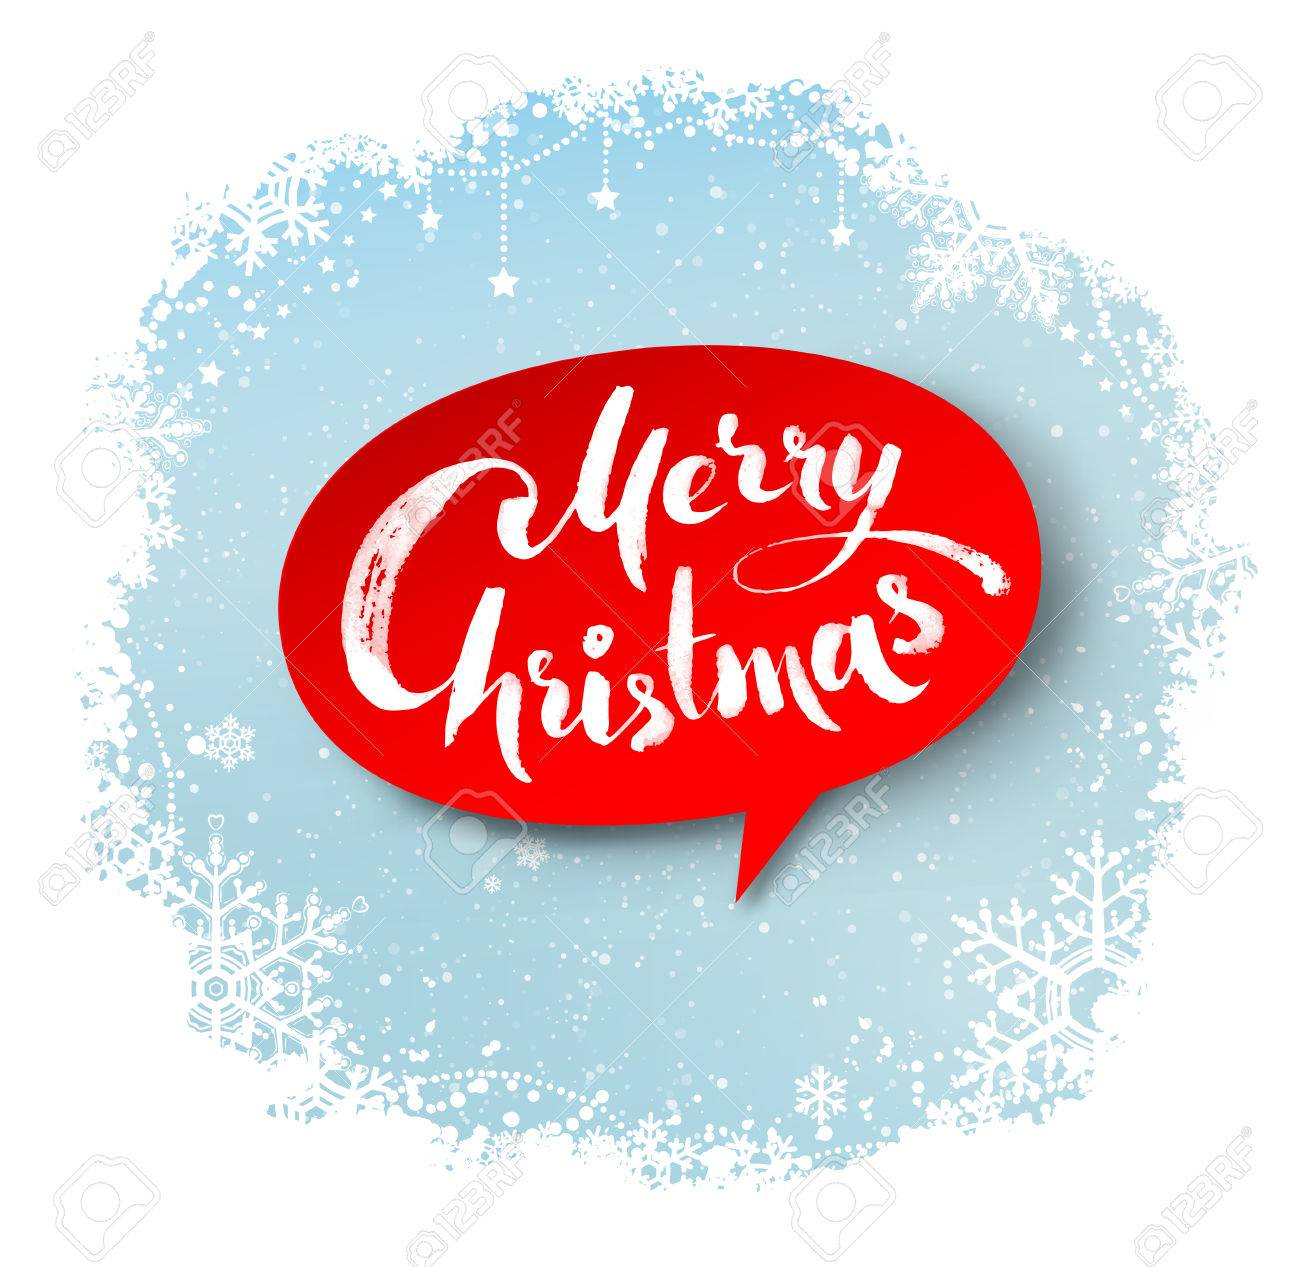 merry christmas hand written letters on red bubble banner and winter snowflakes border background stock